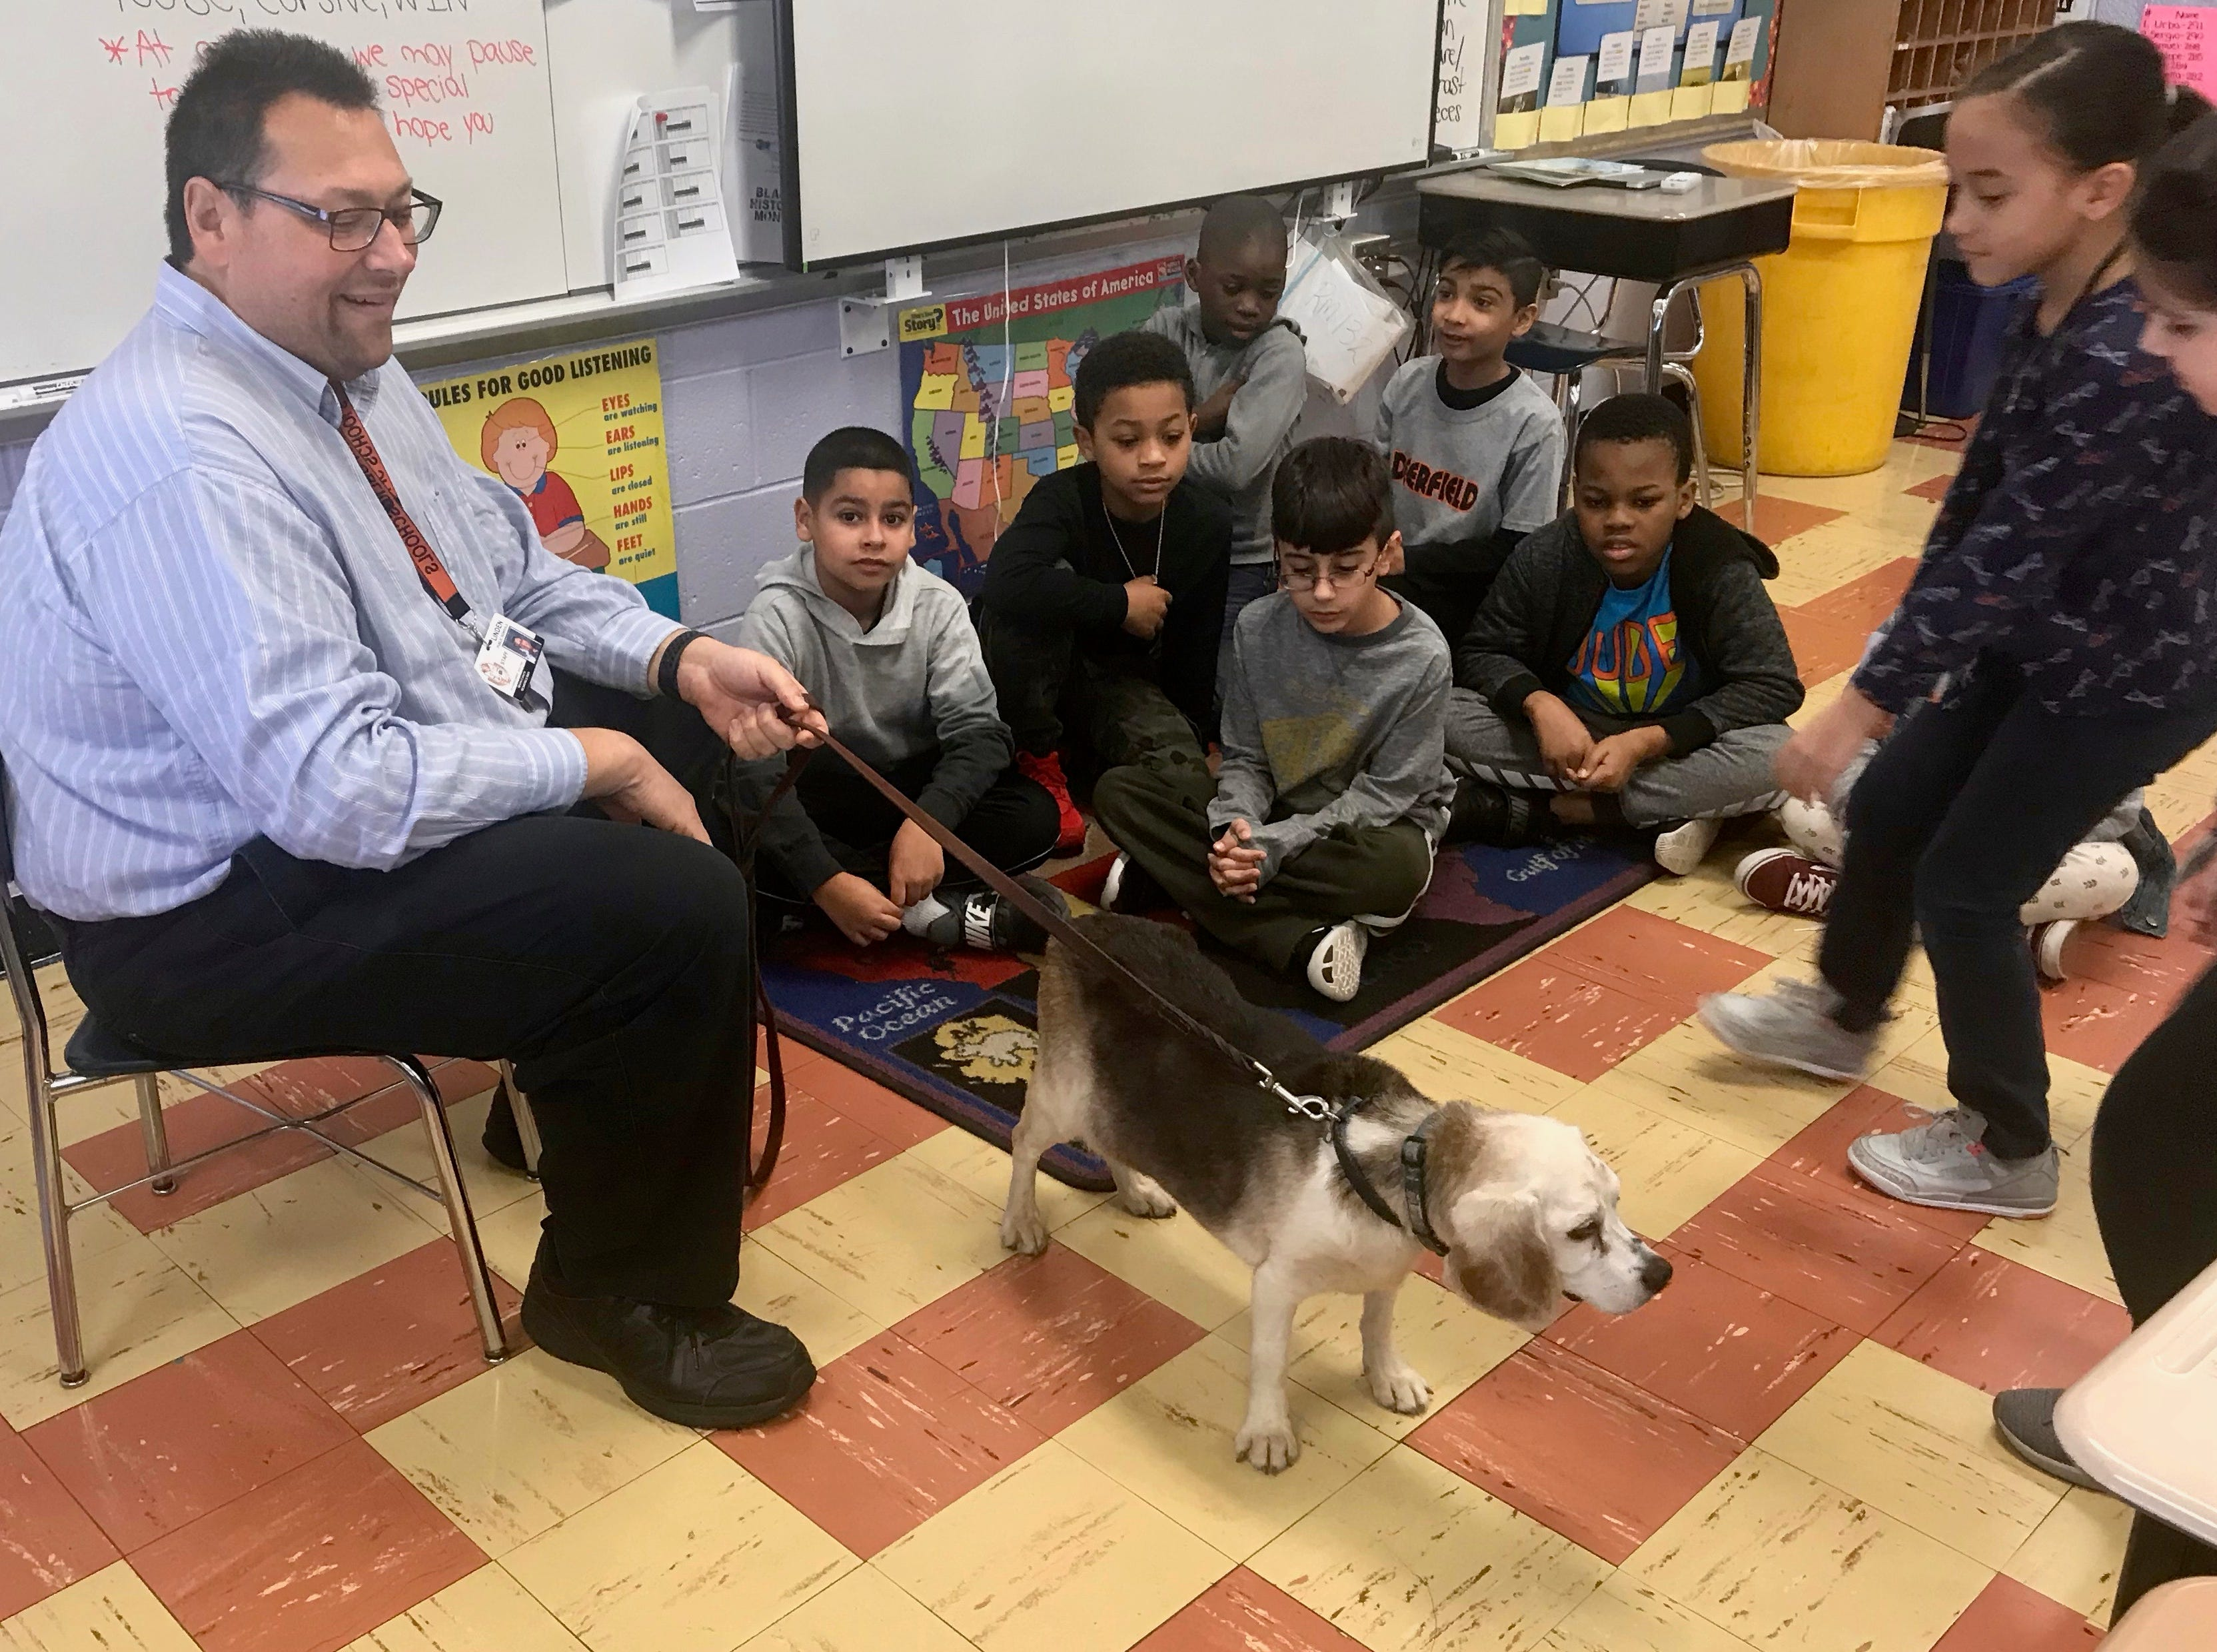 Walter Schweikardt, an elementary math coach in Linden Public Schools, introducing his dog, Buster, a retired therapy dog, to students in Casey Mulroe's class at Deerfield School No. 9.